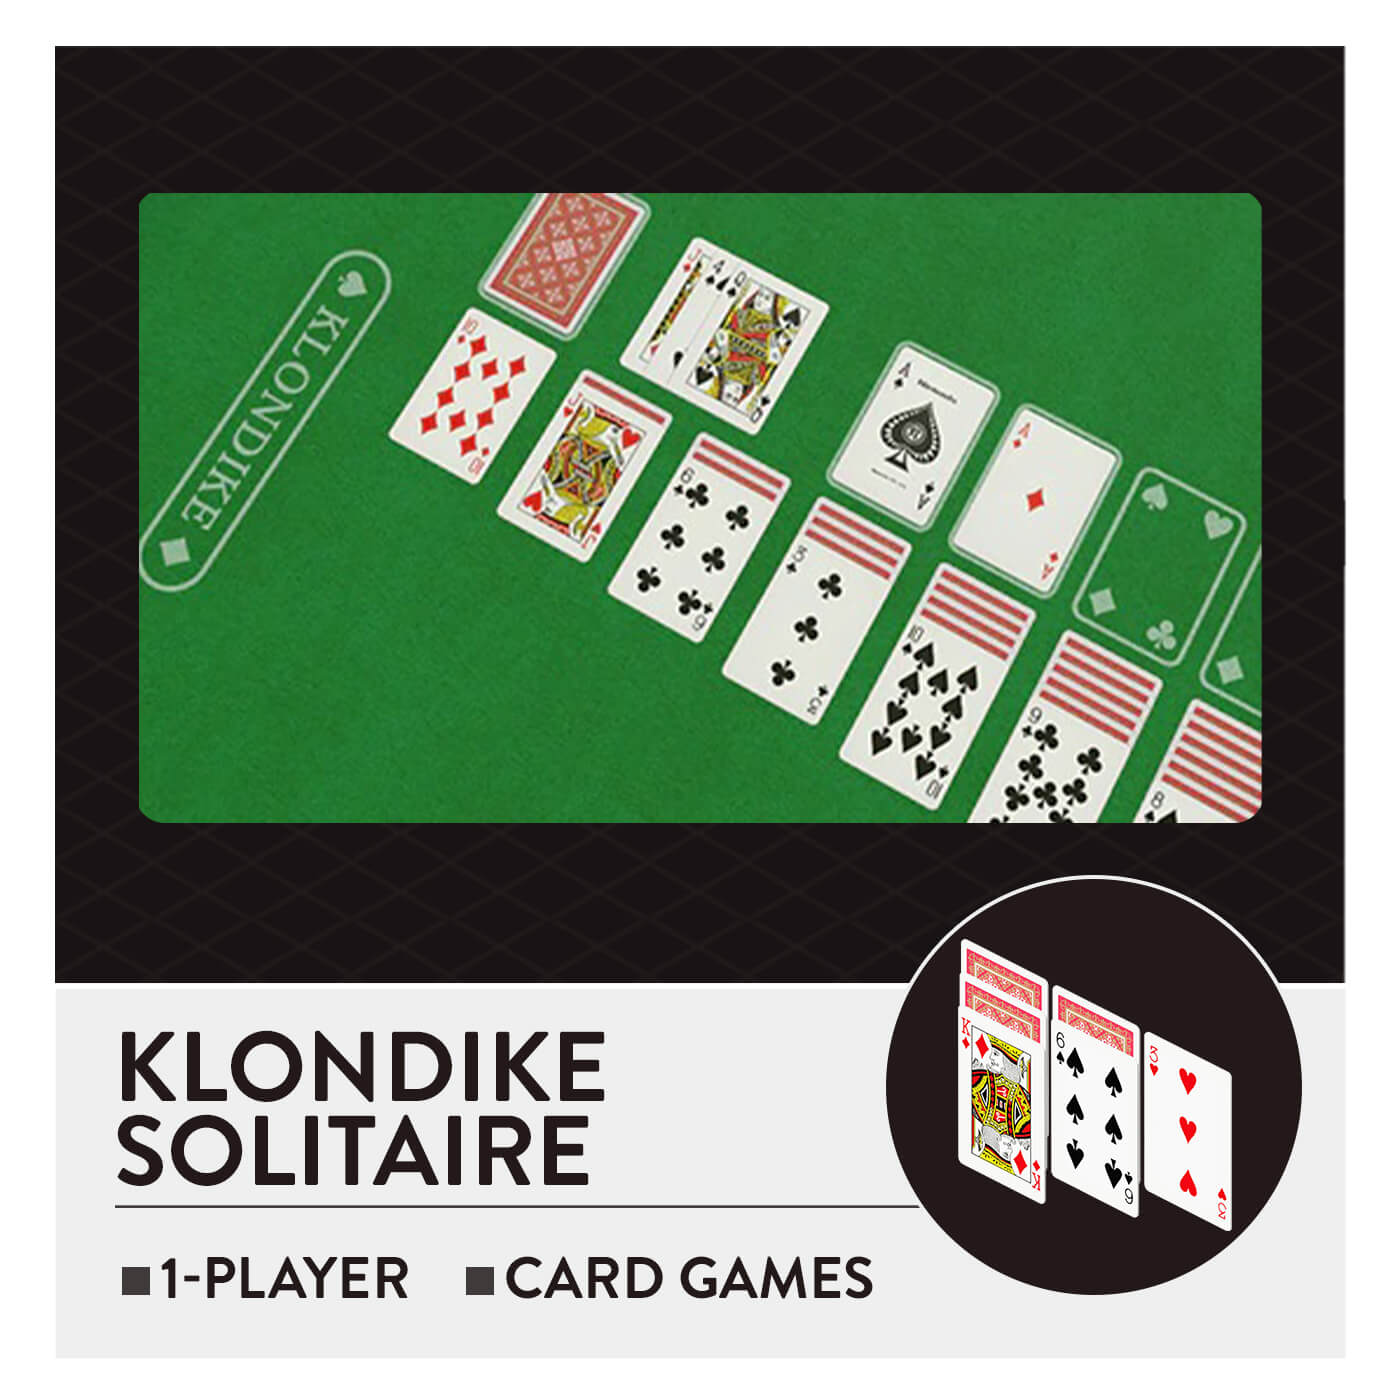 51 Worldwide Games - Klondike Solitaire